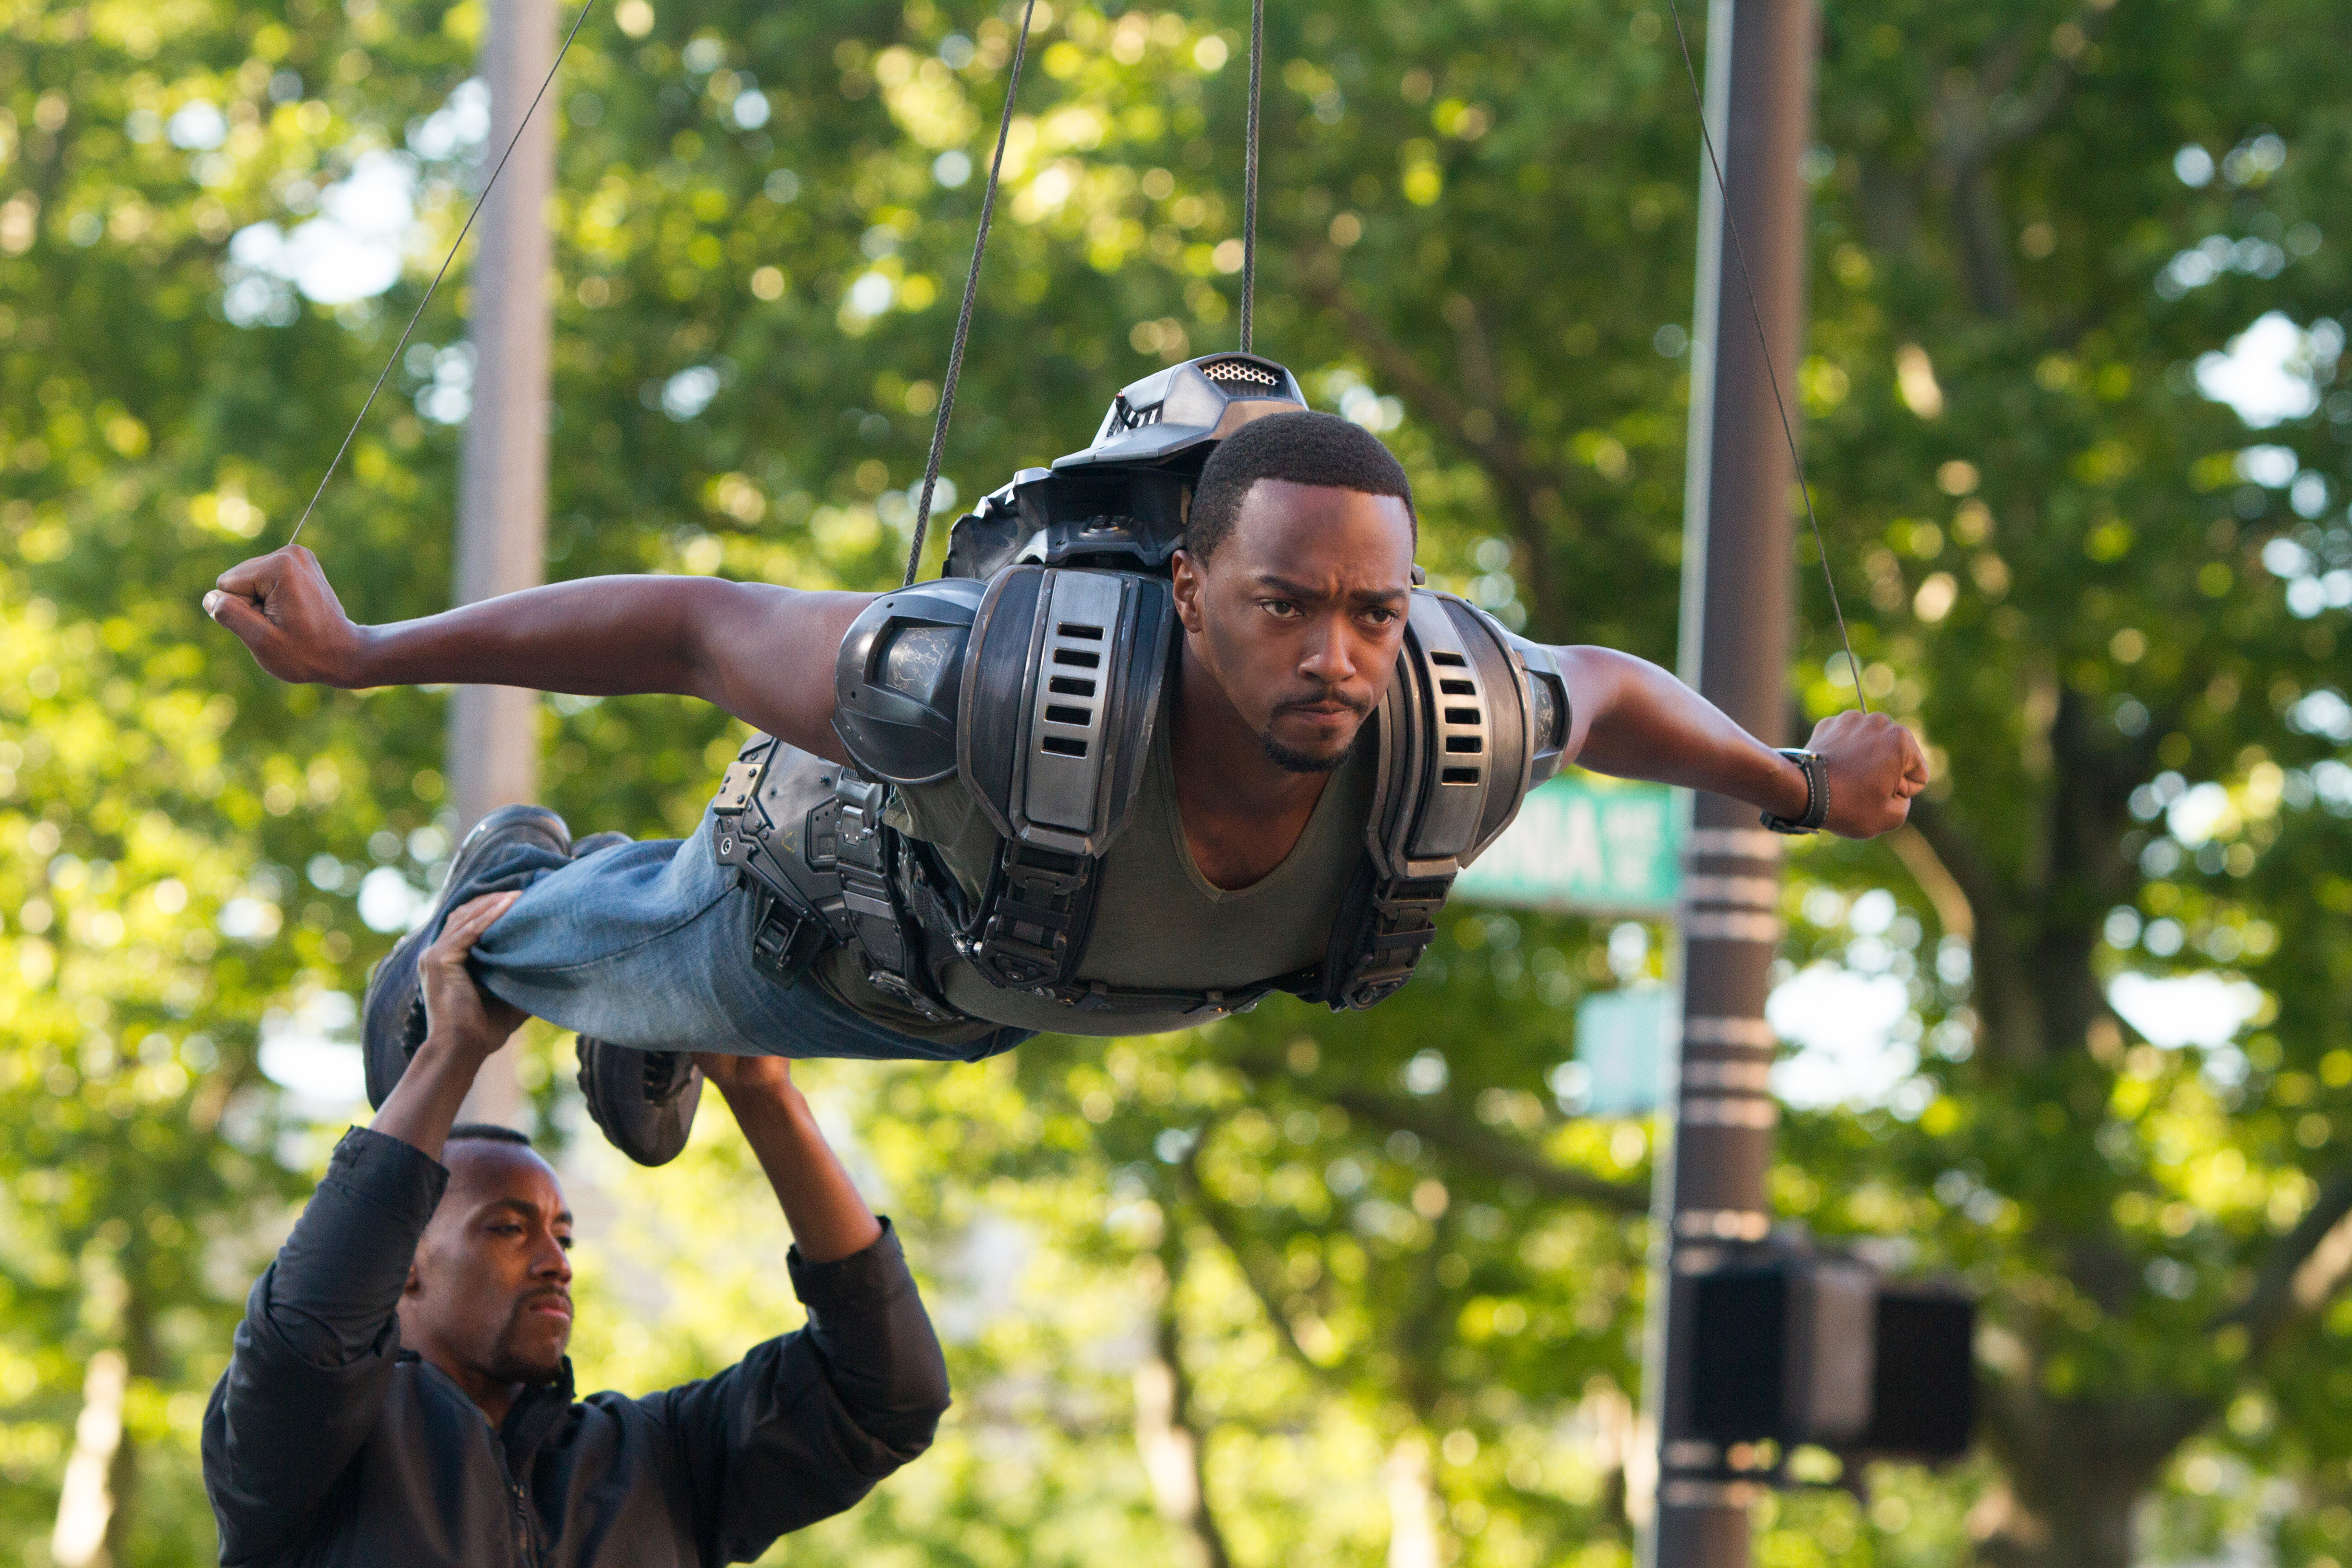 Mackie is suspended for a scene where he flies with his wing pack as the Falcon.